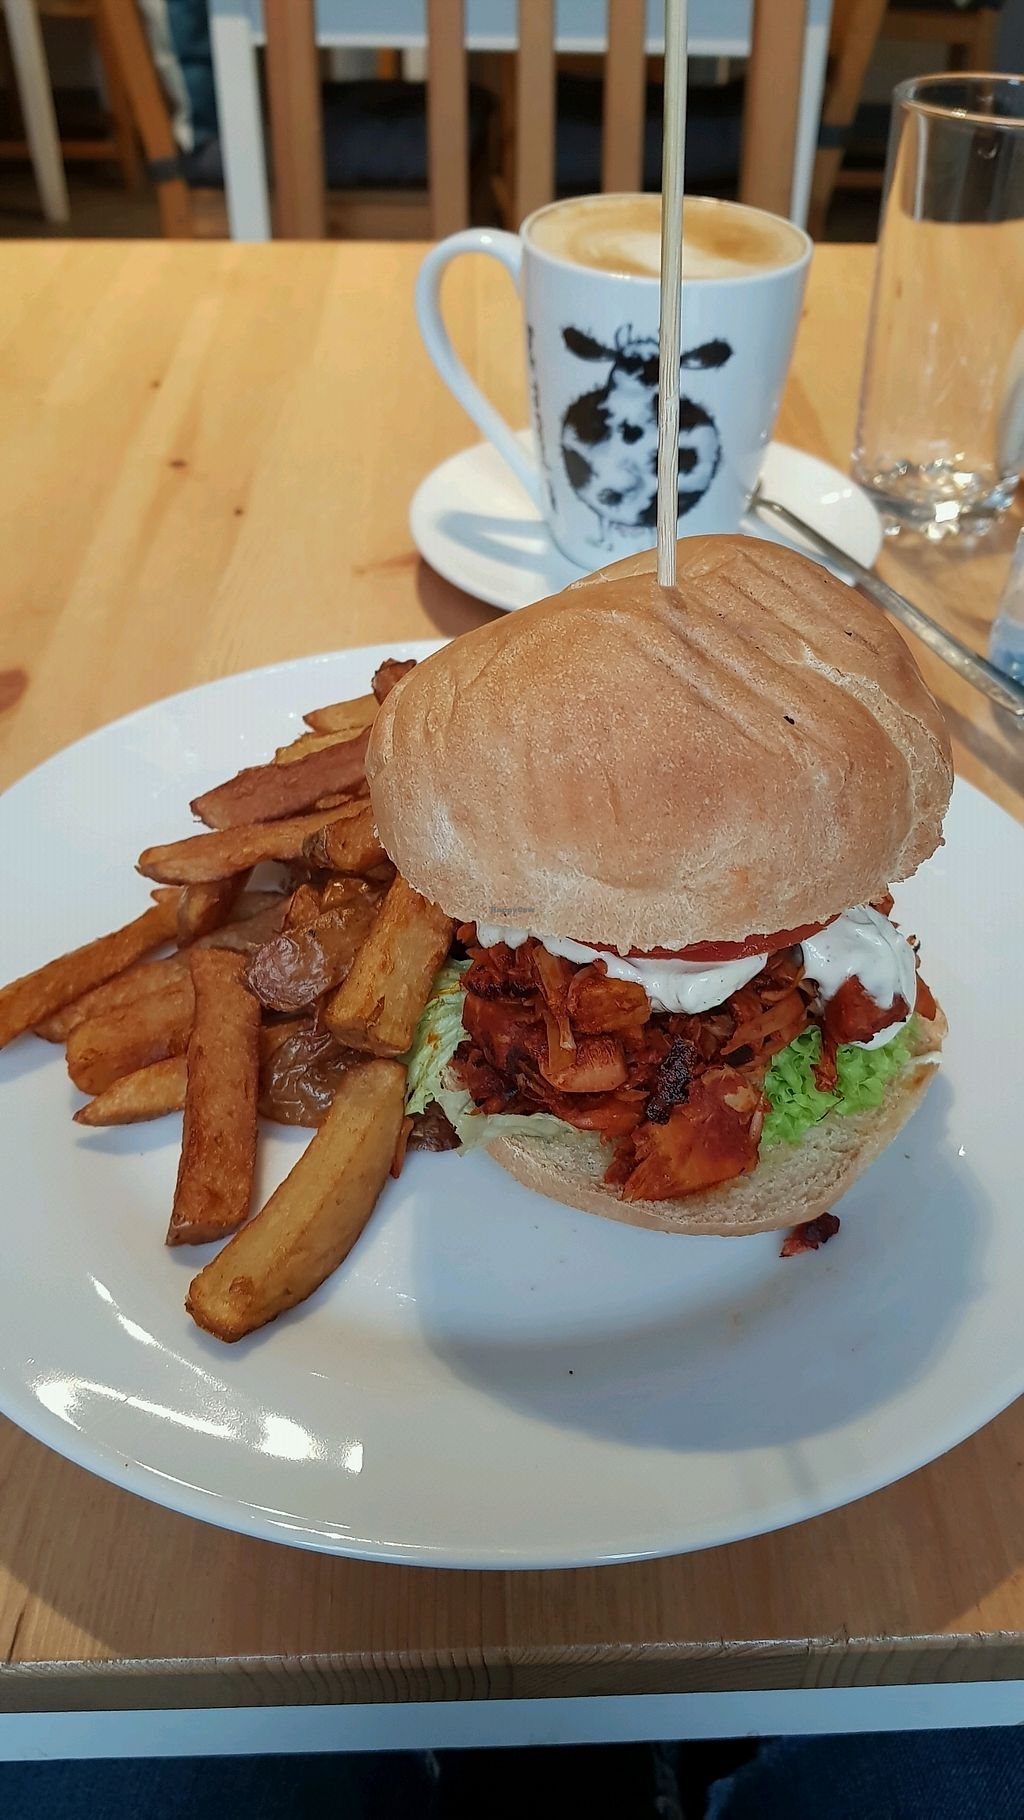 """Photo of Holy Cow  by <a href=""""/members/profile/MoniqueNelson"""">MoniqueNelson</a> <br/>Pulled Jackfruit burger with chips and an oat milk latte   <br/> January 17, 2018  - <a href='/contact/abuse/image/83562/347496'>Report</a>"""